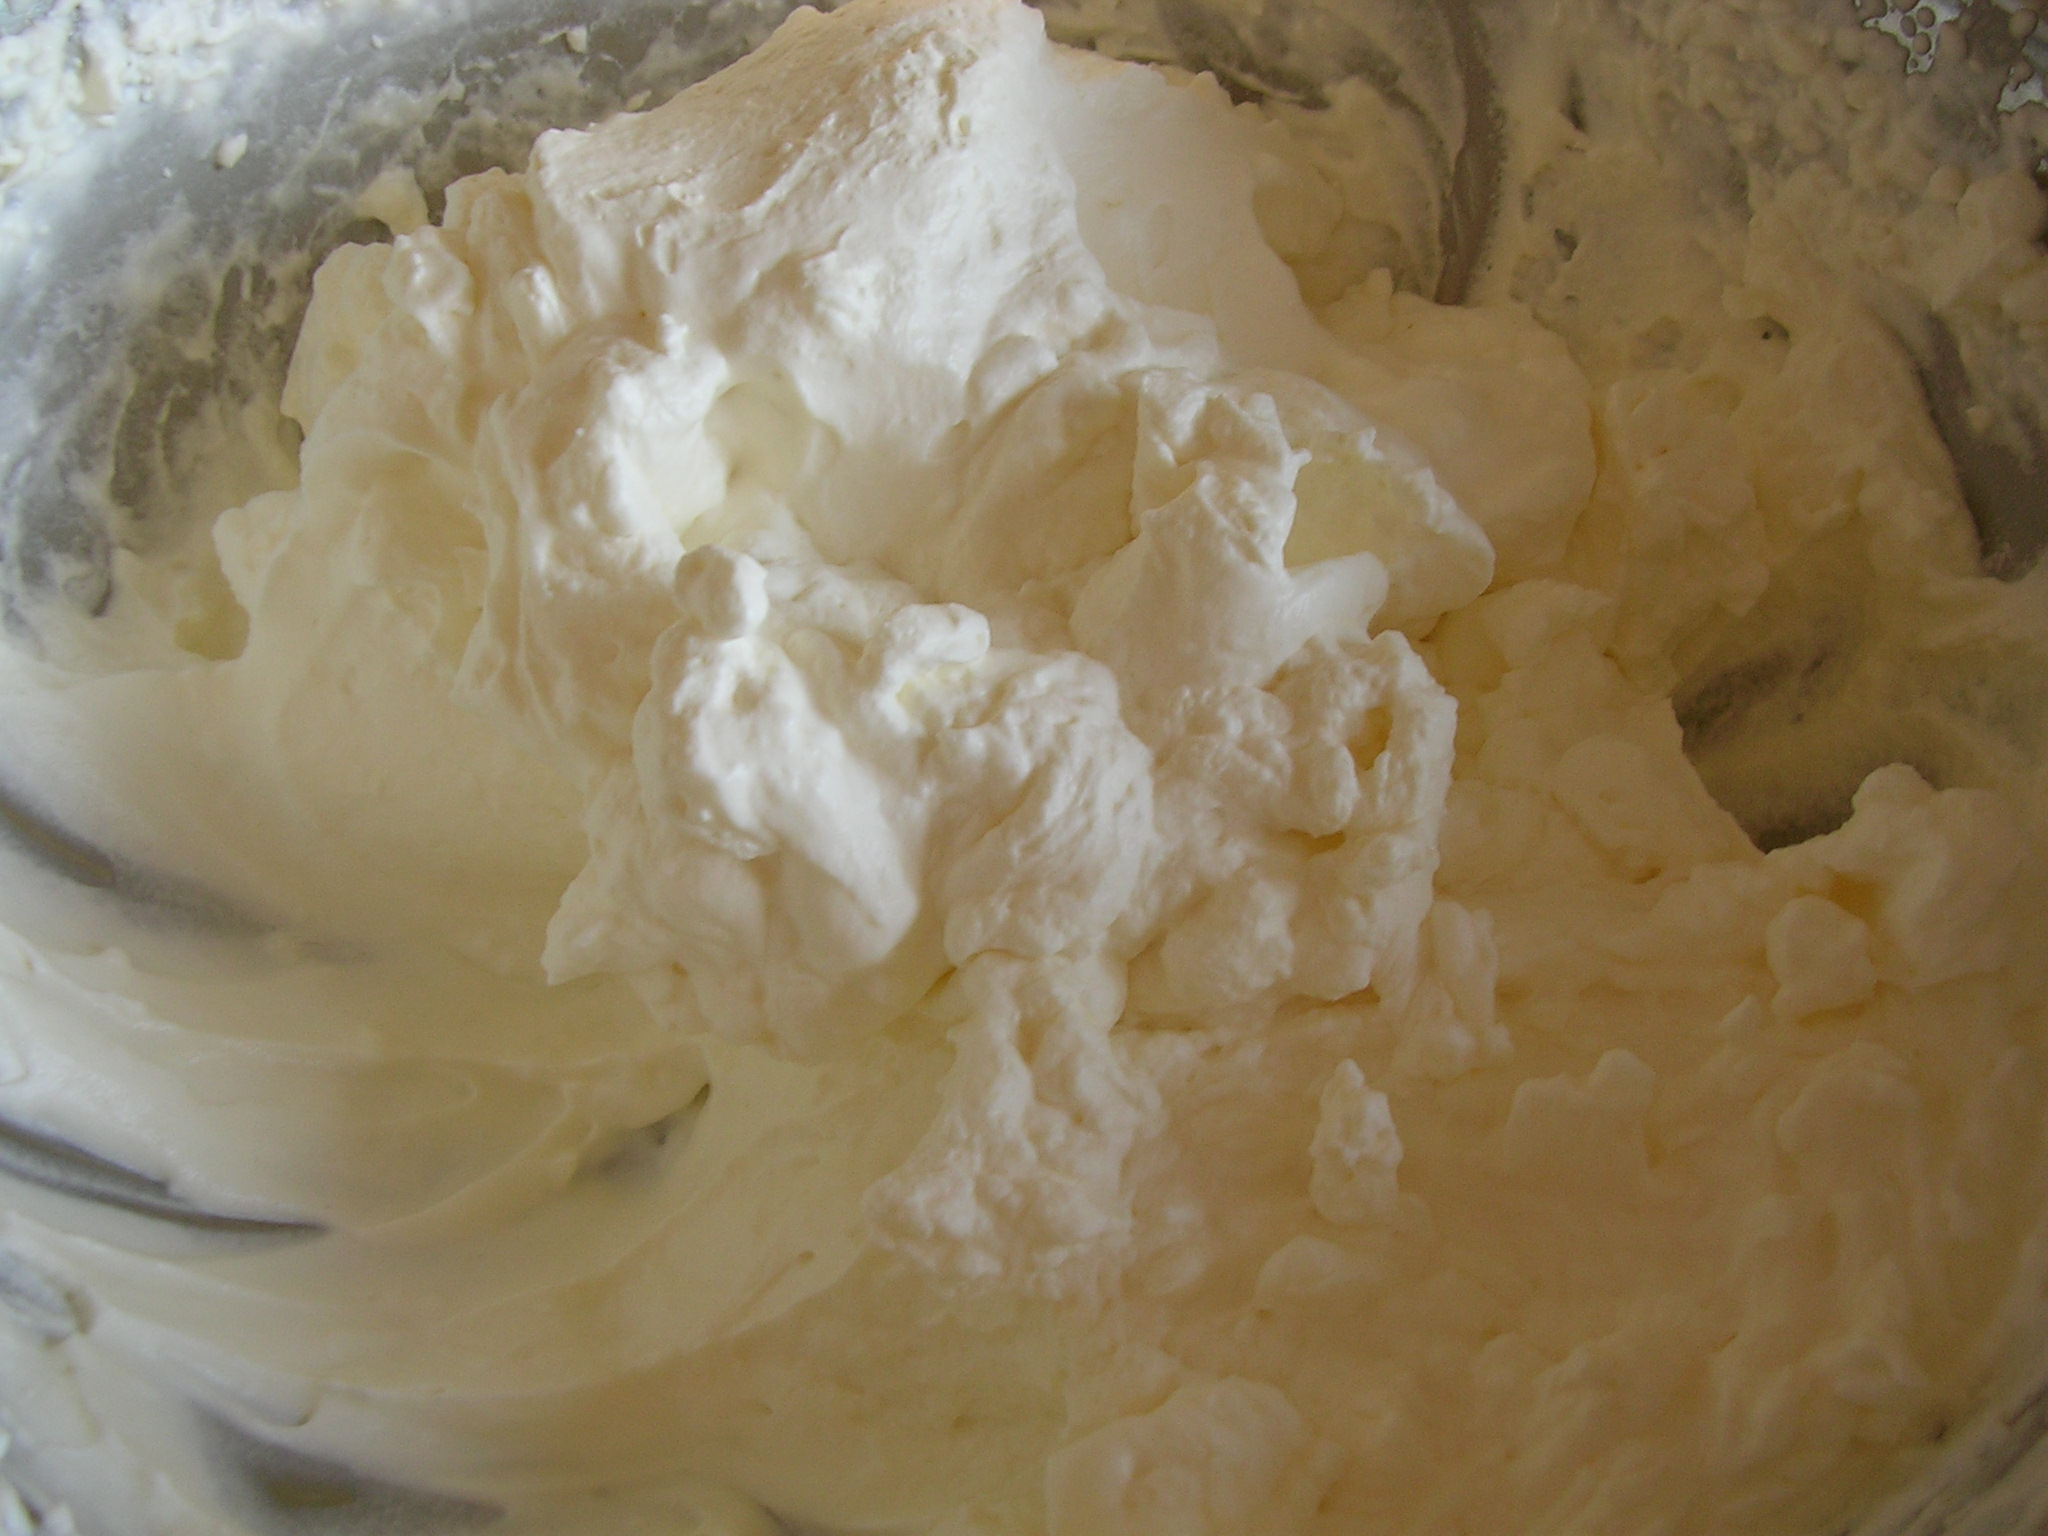 Stabilized Whipped Cream Frosting For Cake Decoratingbest Cake In Bethesda Md